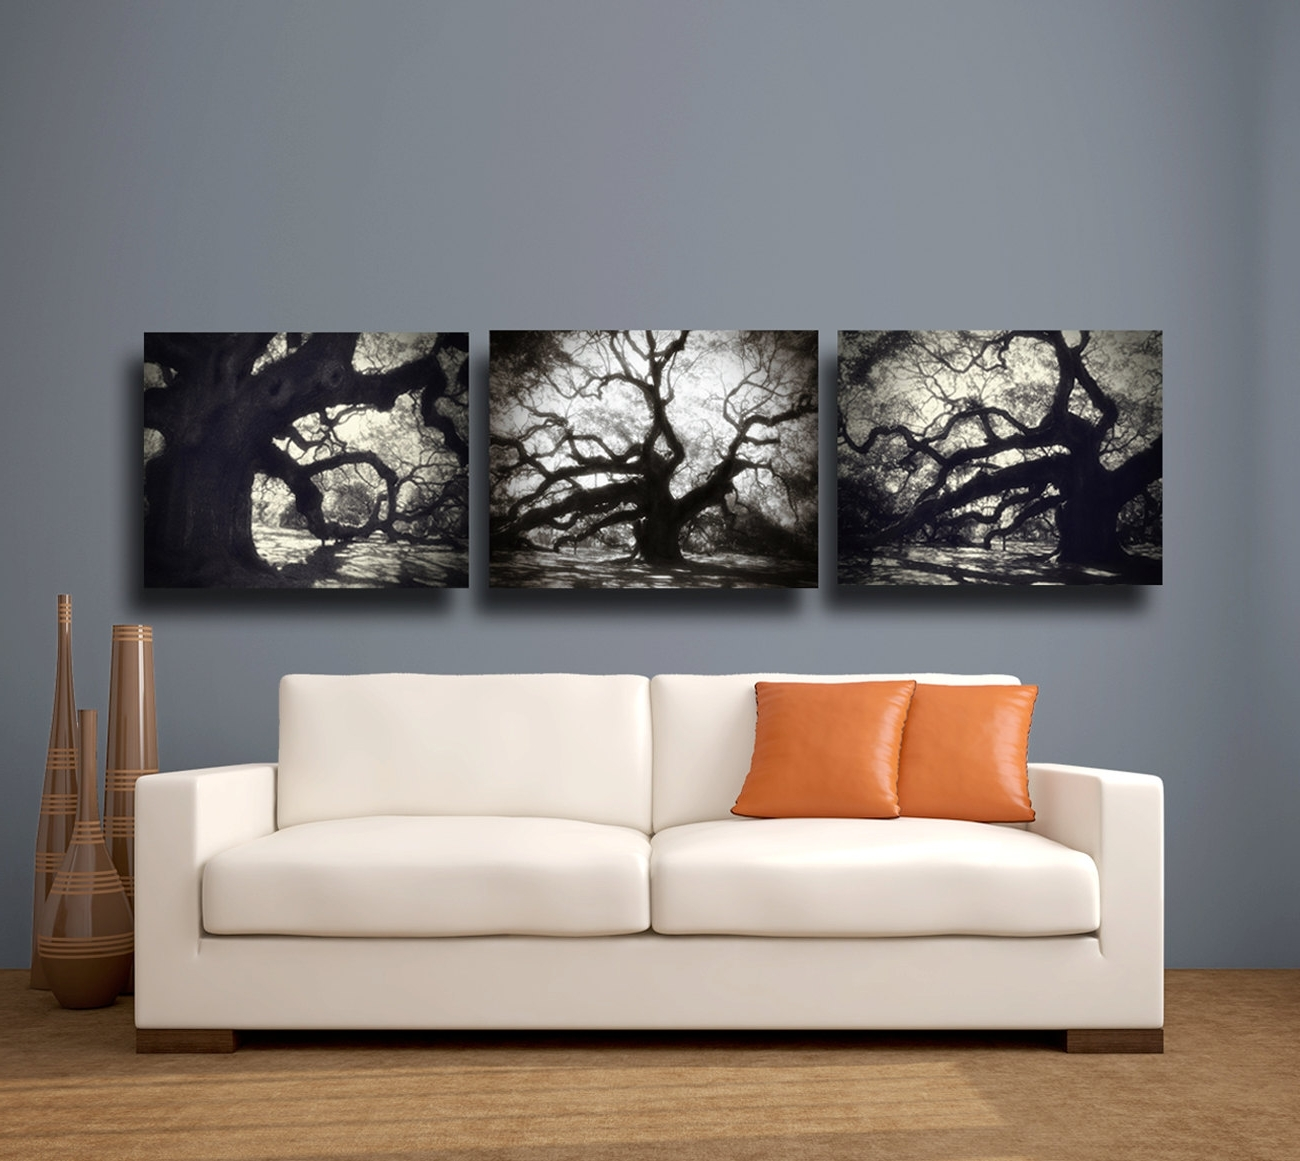 Wall Art Designs: Black And White Canvas Wall Art Astounding With Regard To 2018 Large Black And White Wall Art (View 15 of 15)